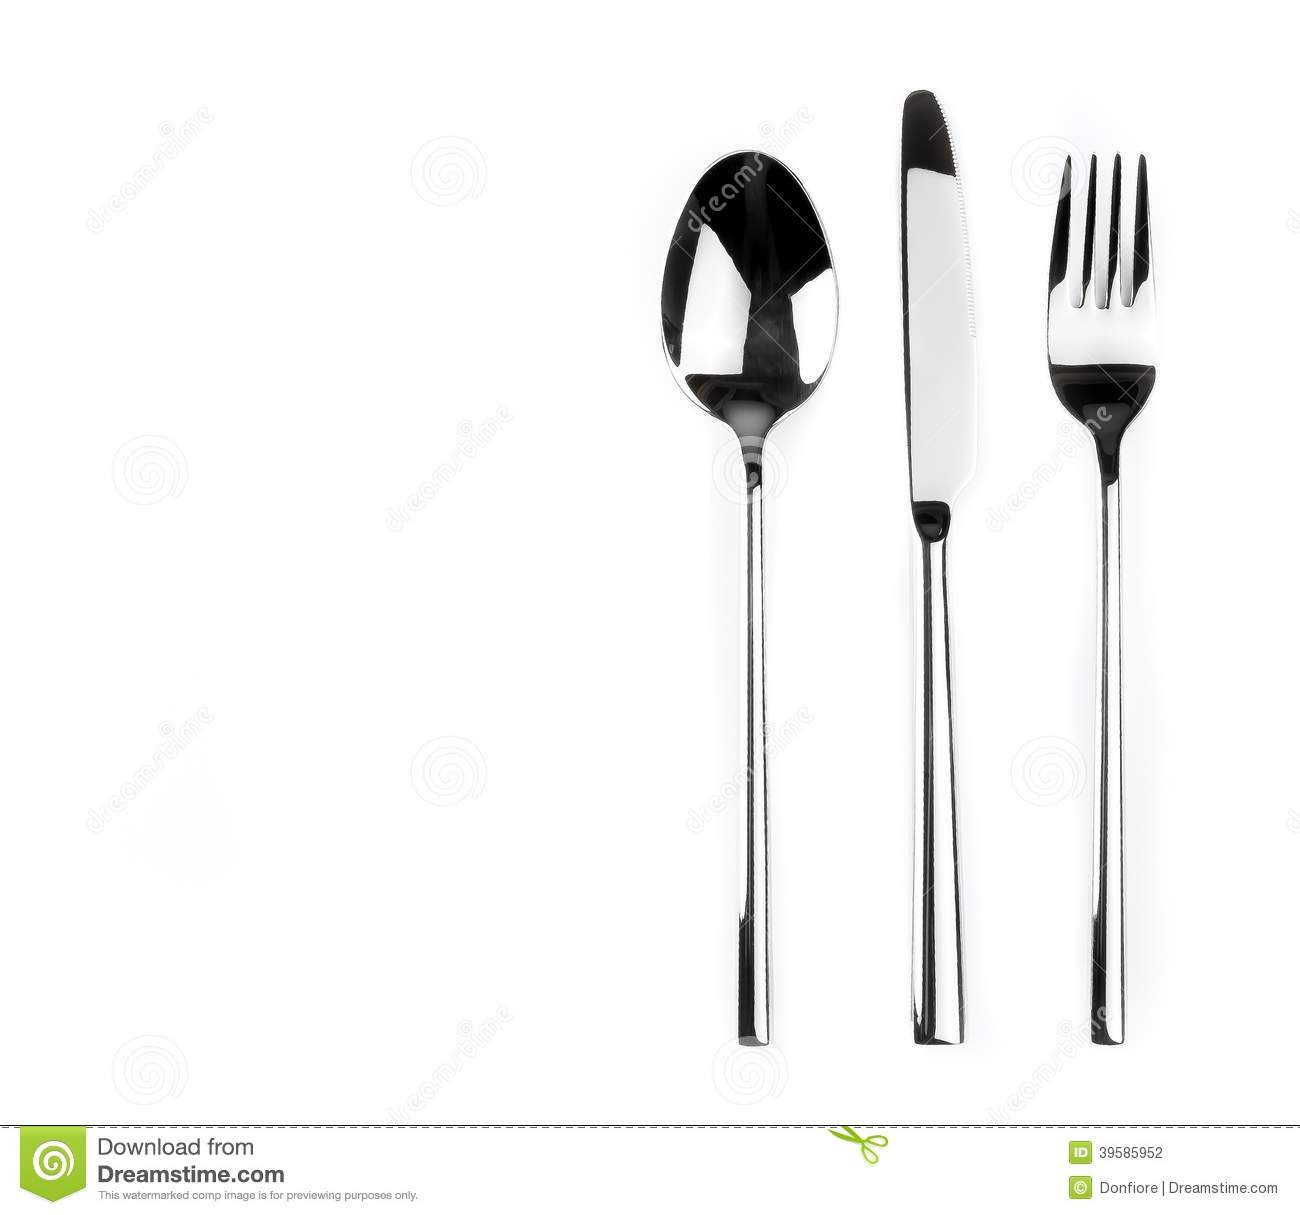 Top Of View Of Spoon Knife And Fork Isolated On White Background